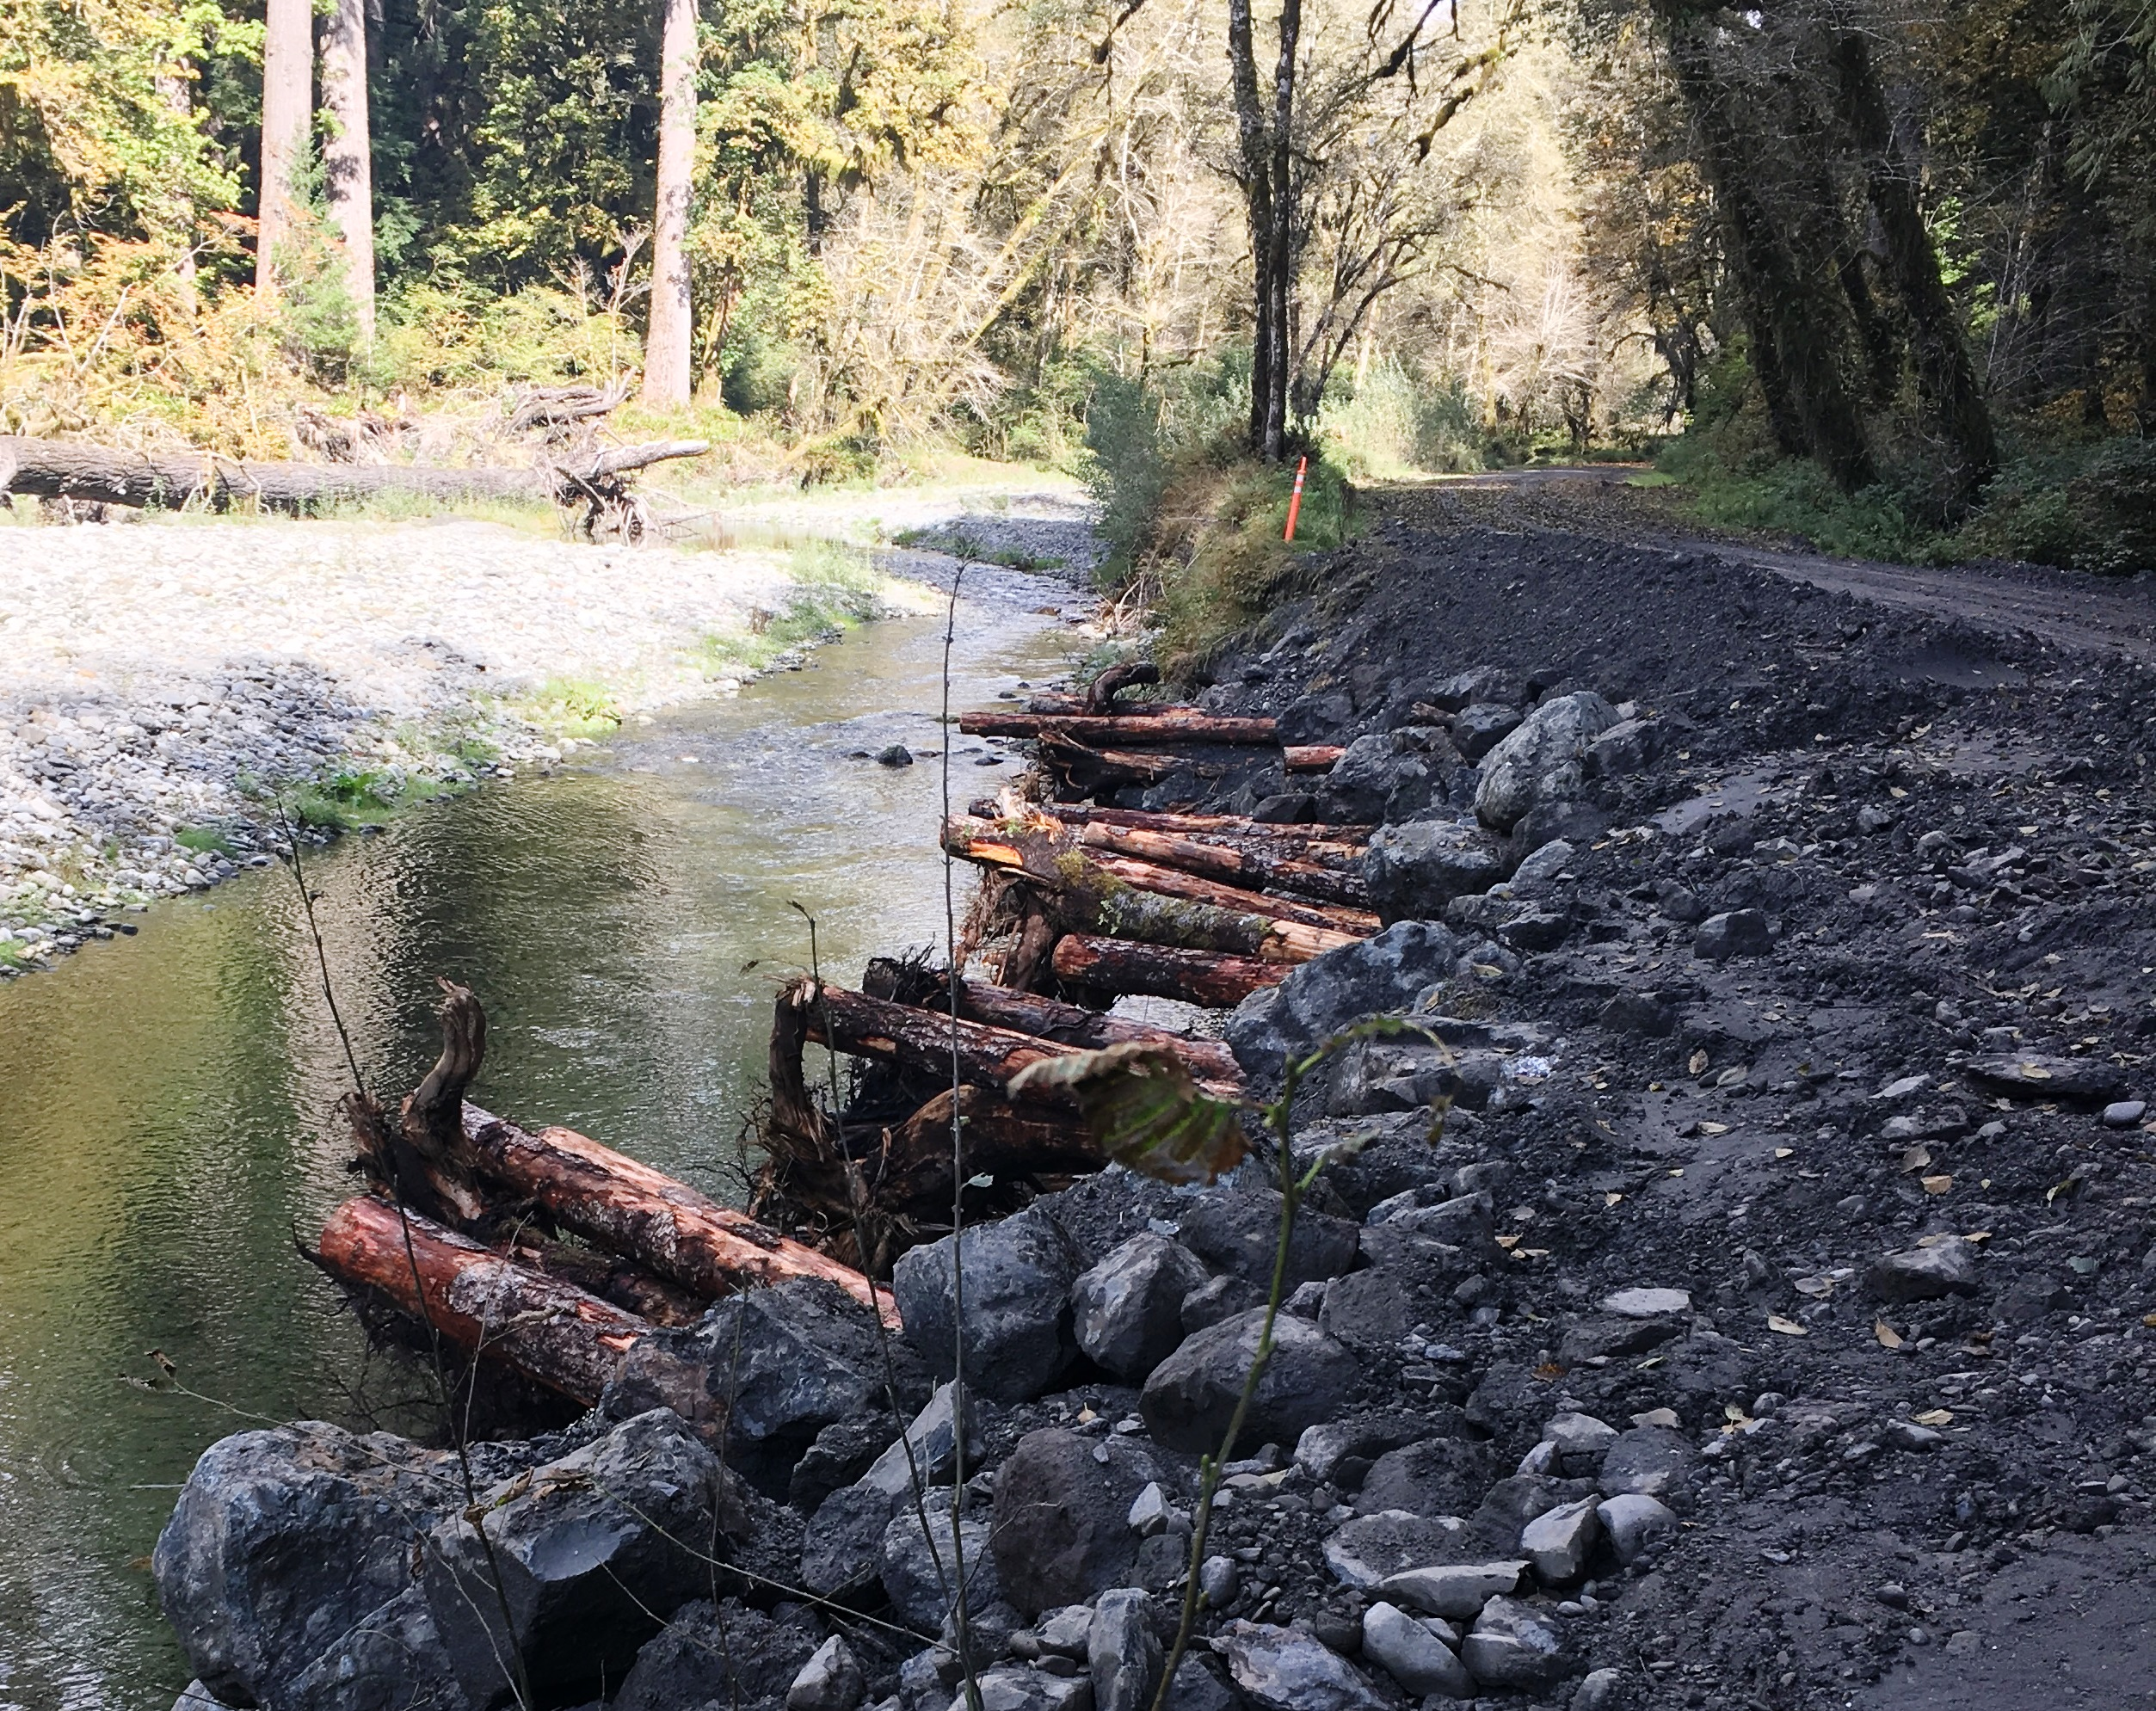 Road repair on a gravel road next to a river.